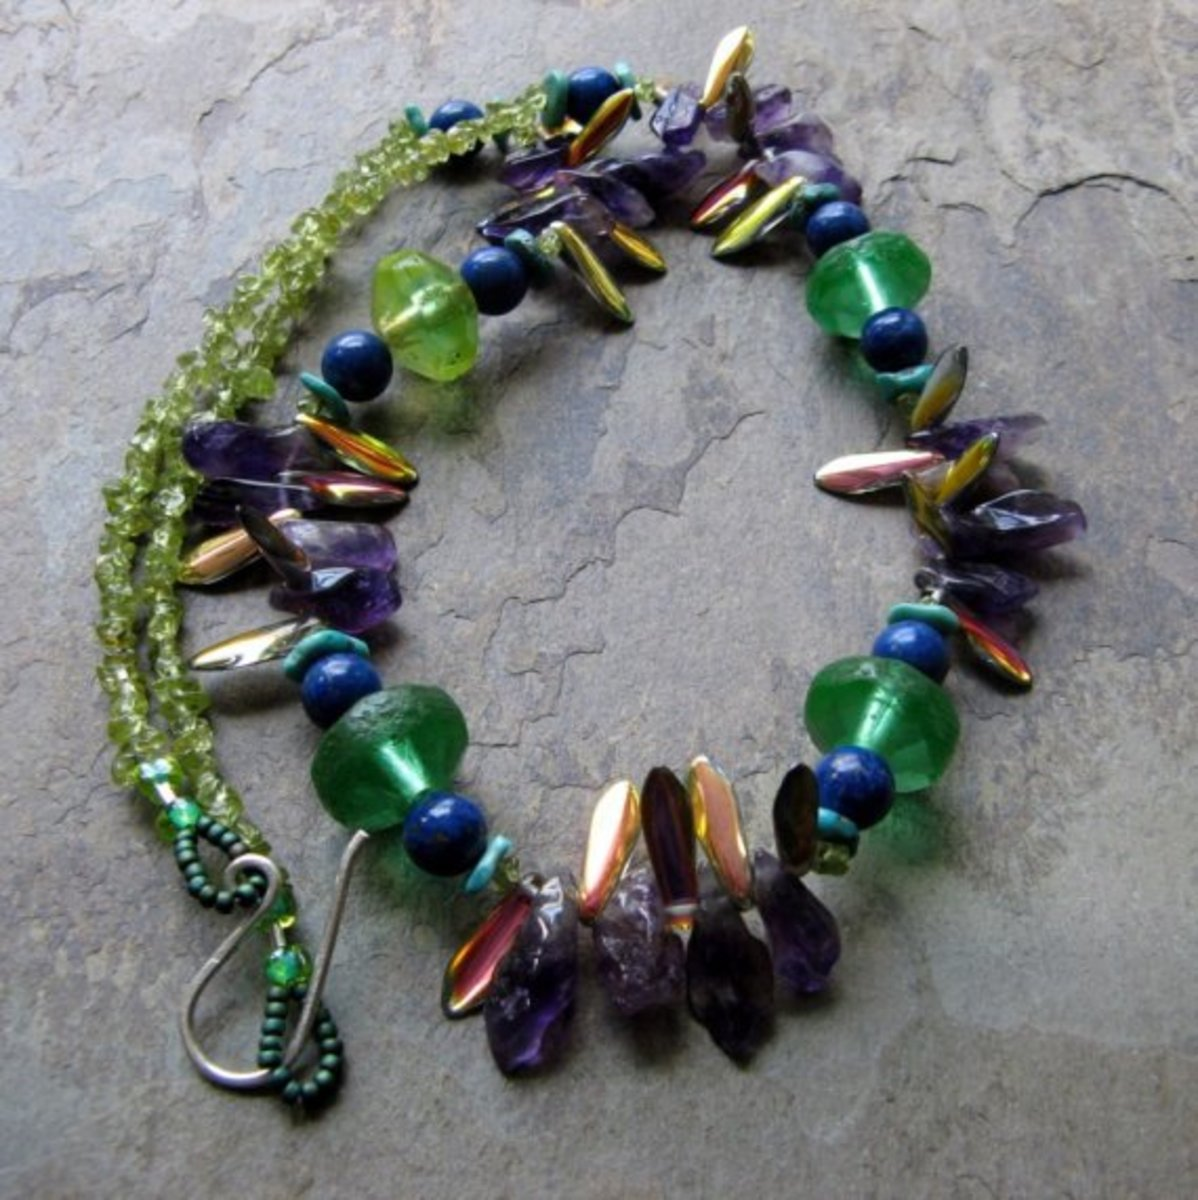 Consider mixing daggers with all sorts of other jewelry components such as gemstones or gemstone chips like Sarah does.